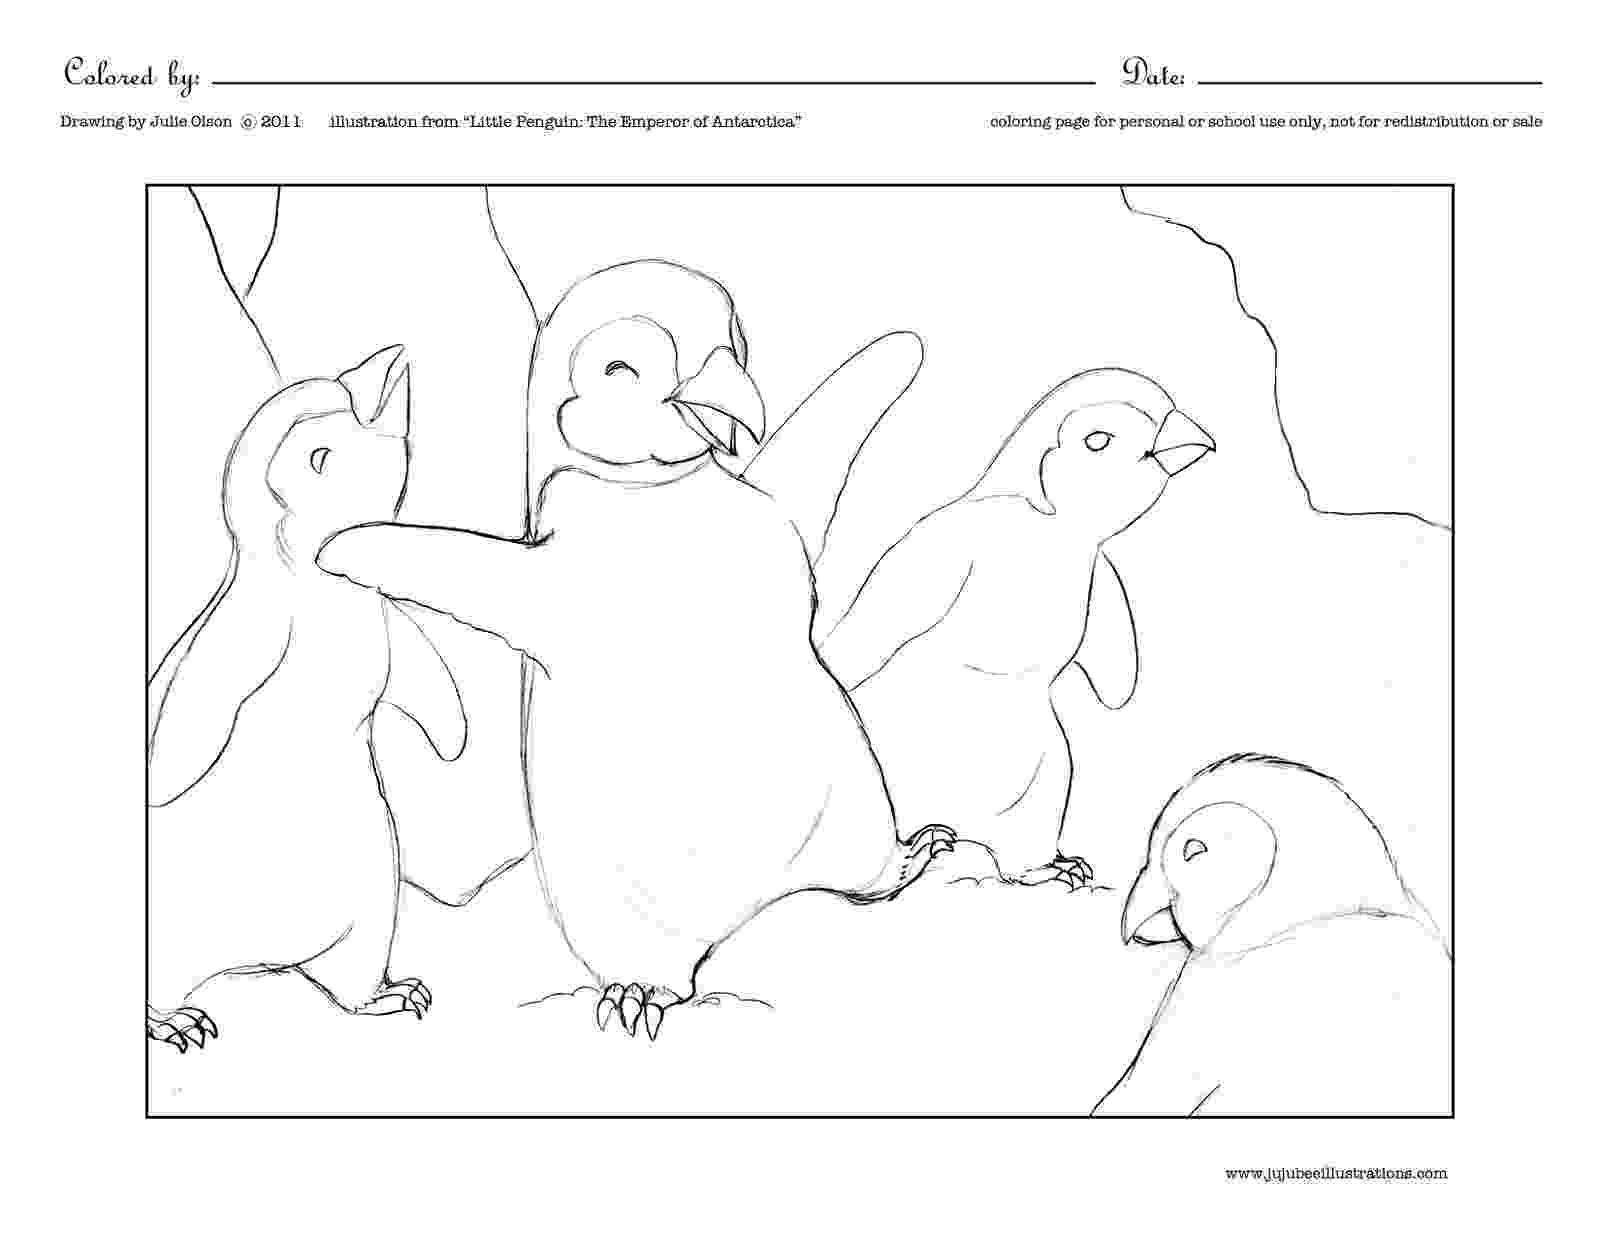 antarctica coloring pages antarctica coloring page coloring places and seasons pages antarctica coloring